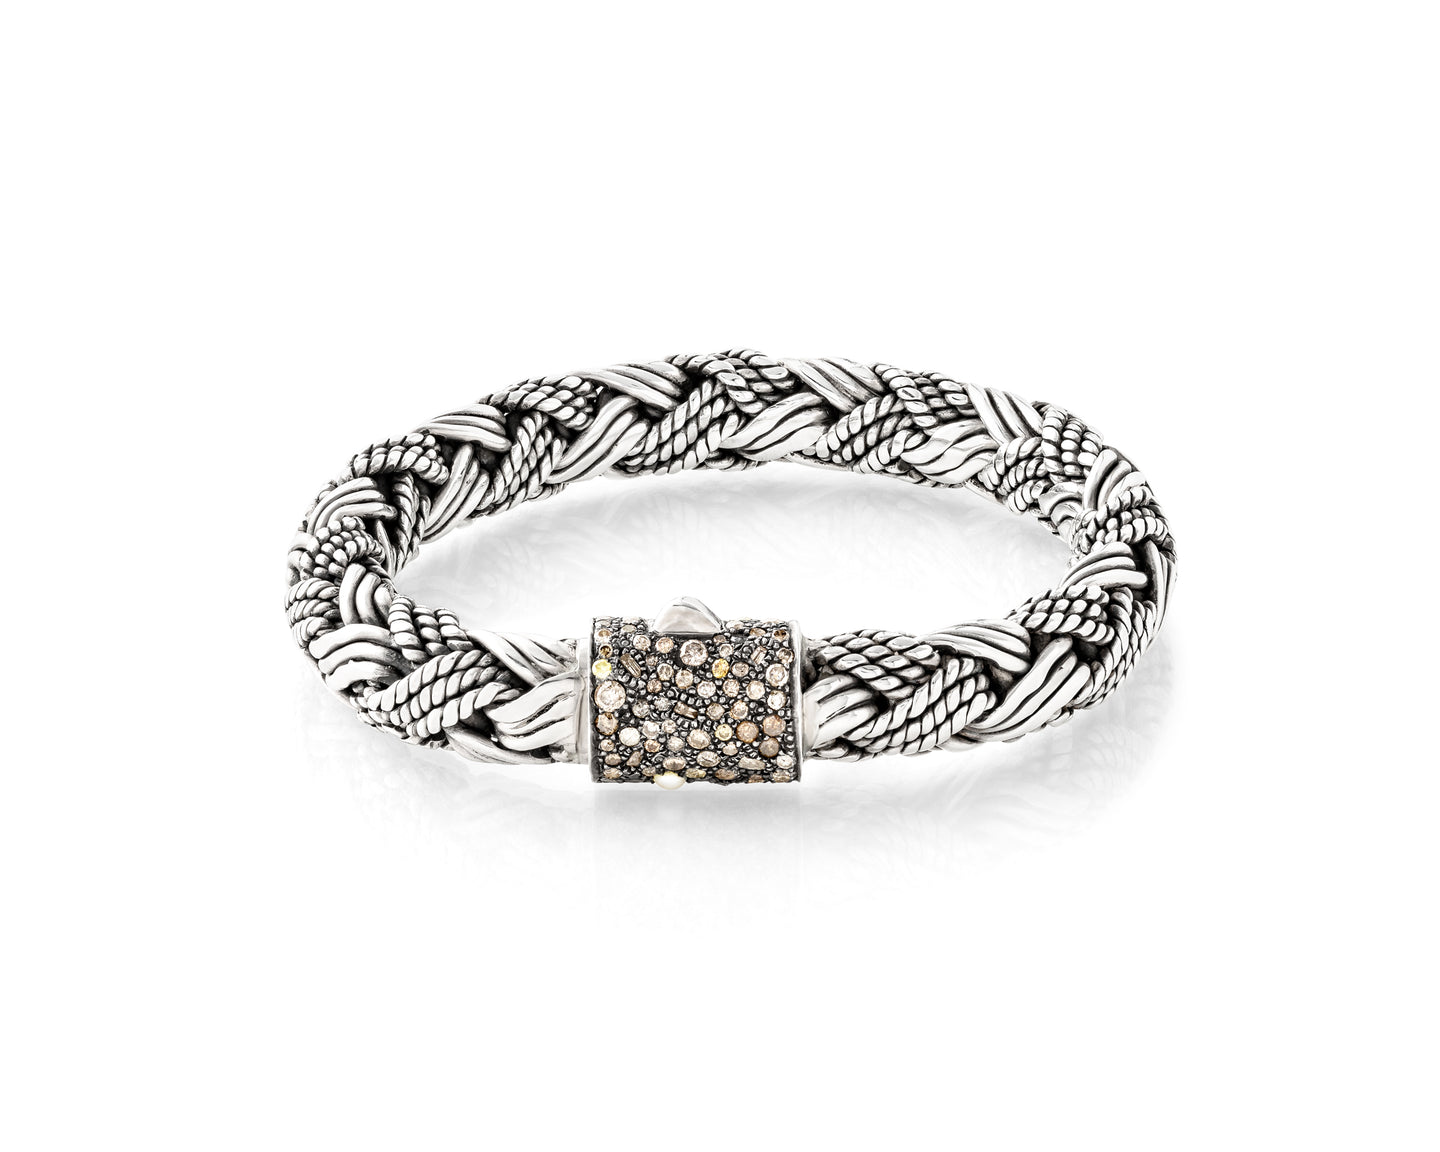 2 86ct Diamond Woven Silver Bracelet Designer Pearl And Leather